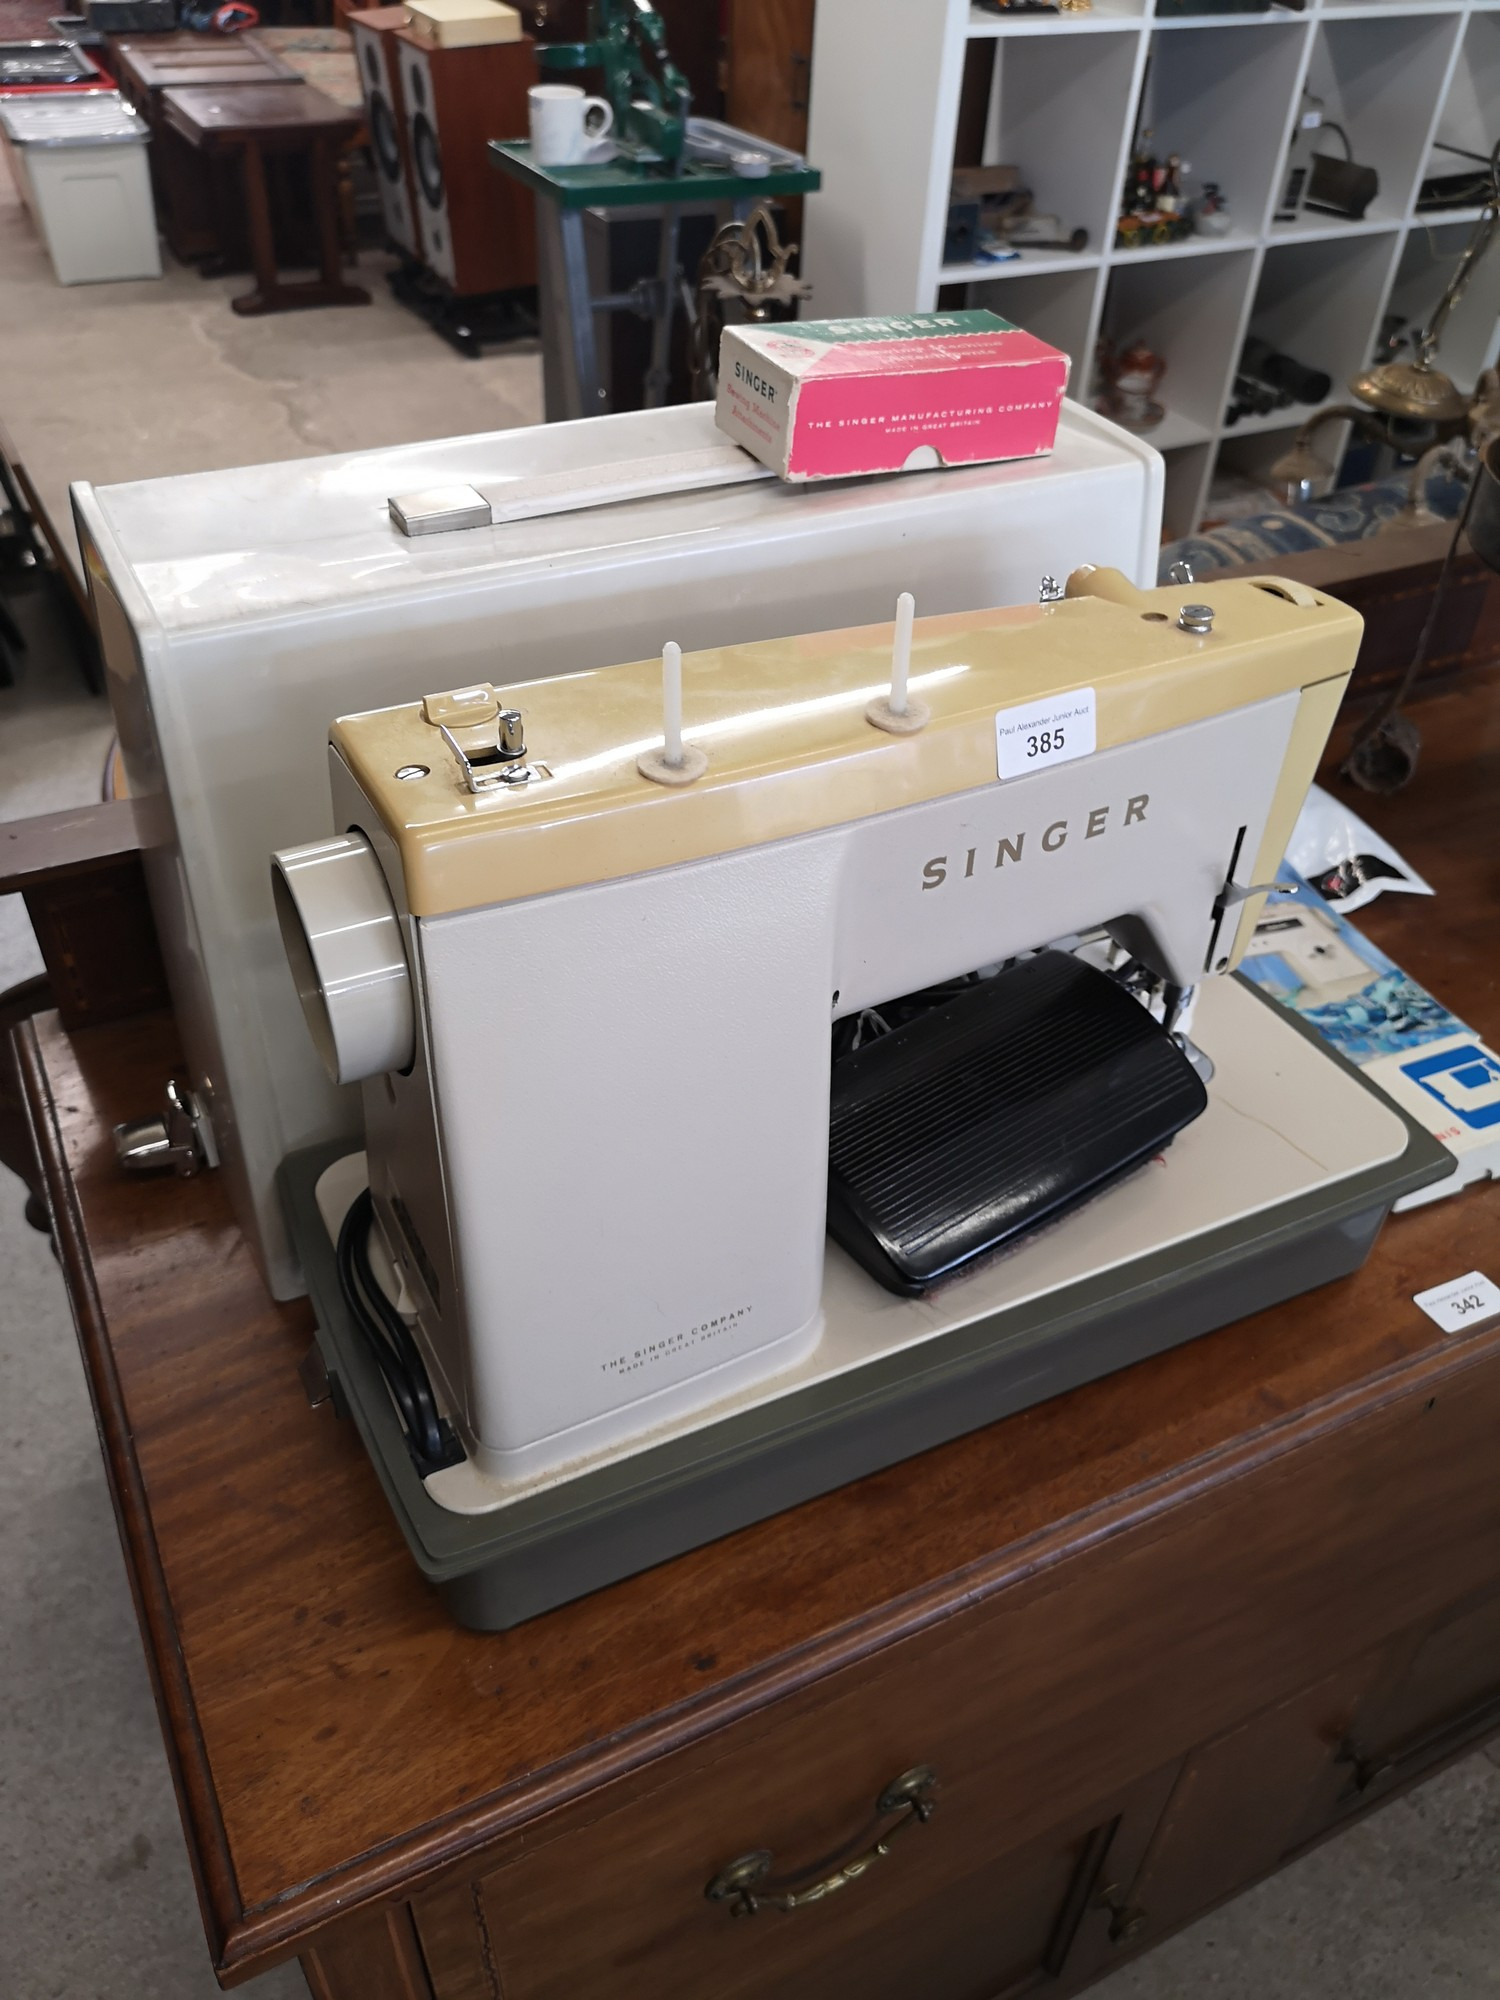 Singer modern sewing machine with accessories. - Image 2 of 2